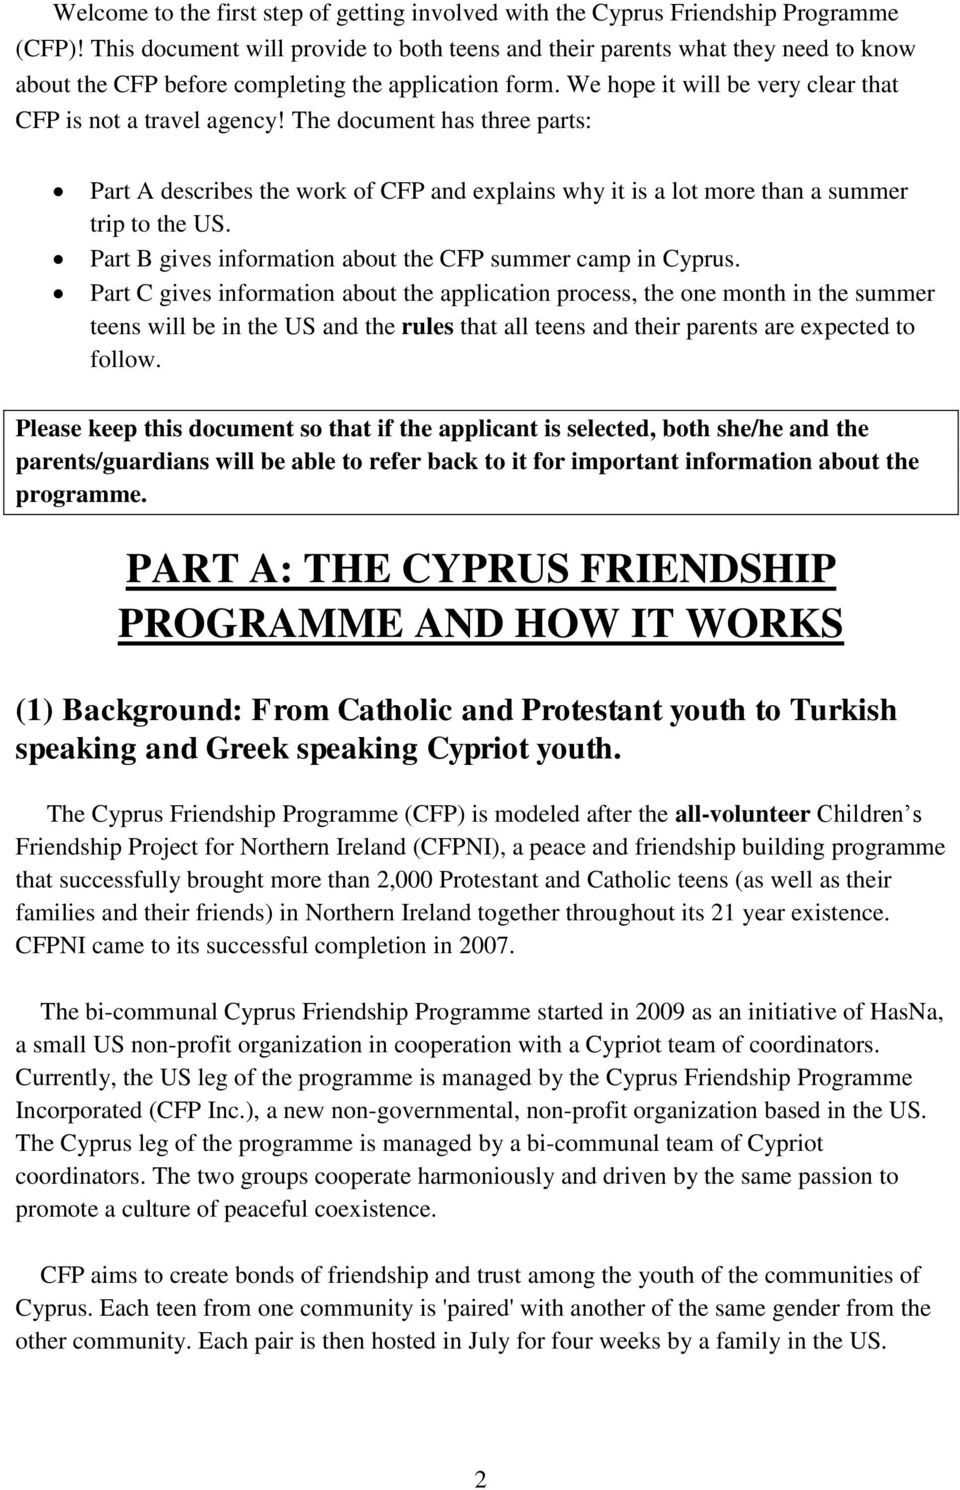 The document has three parts: Part A describes the work of CFP and explains why it is a lot more than a summer trip to the US. Part B gives information about the CFP summer camp in Cyprus.